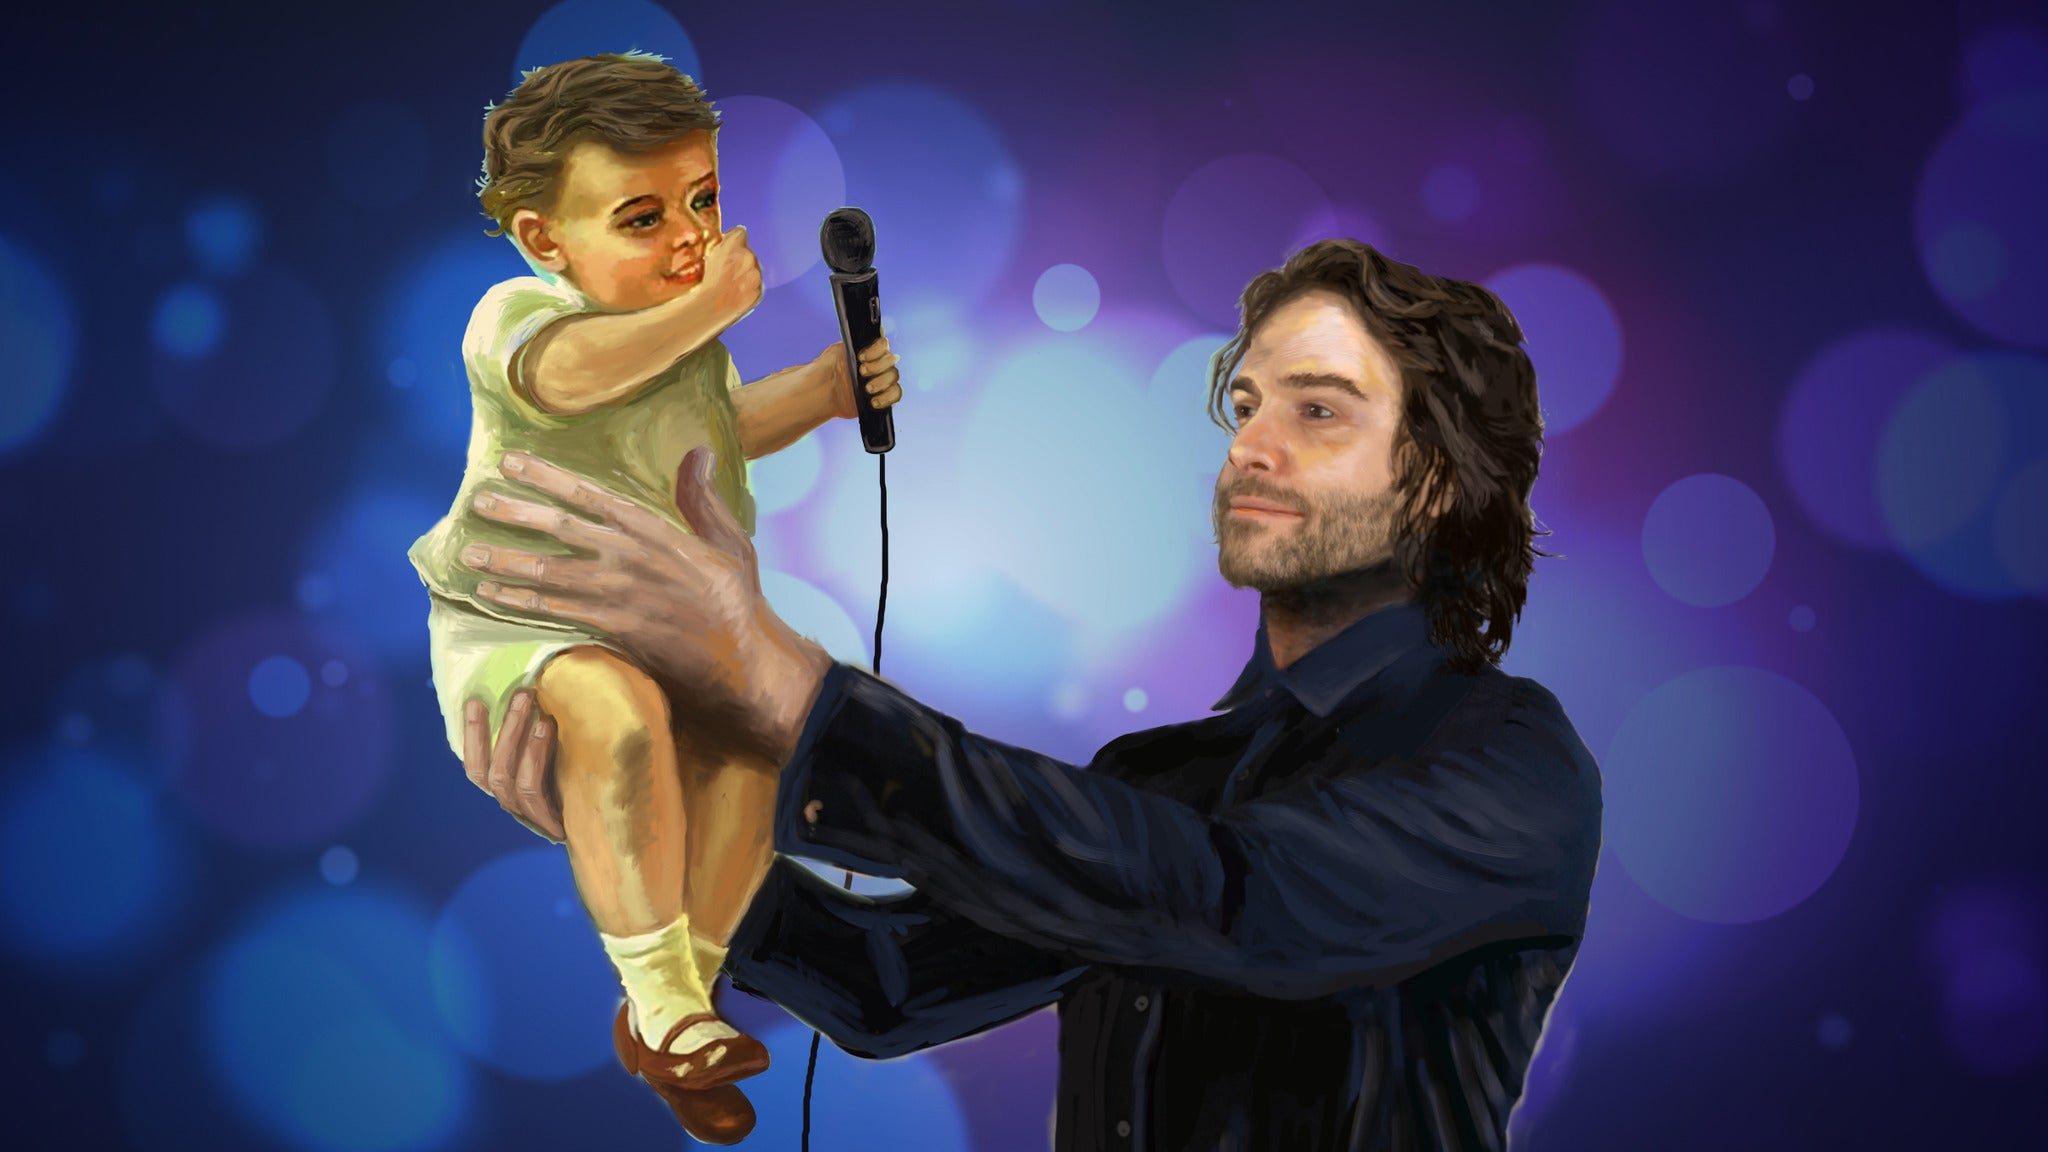 Chris D'elia at Warnors Theatre